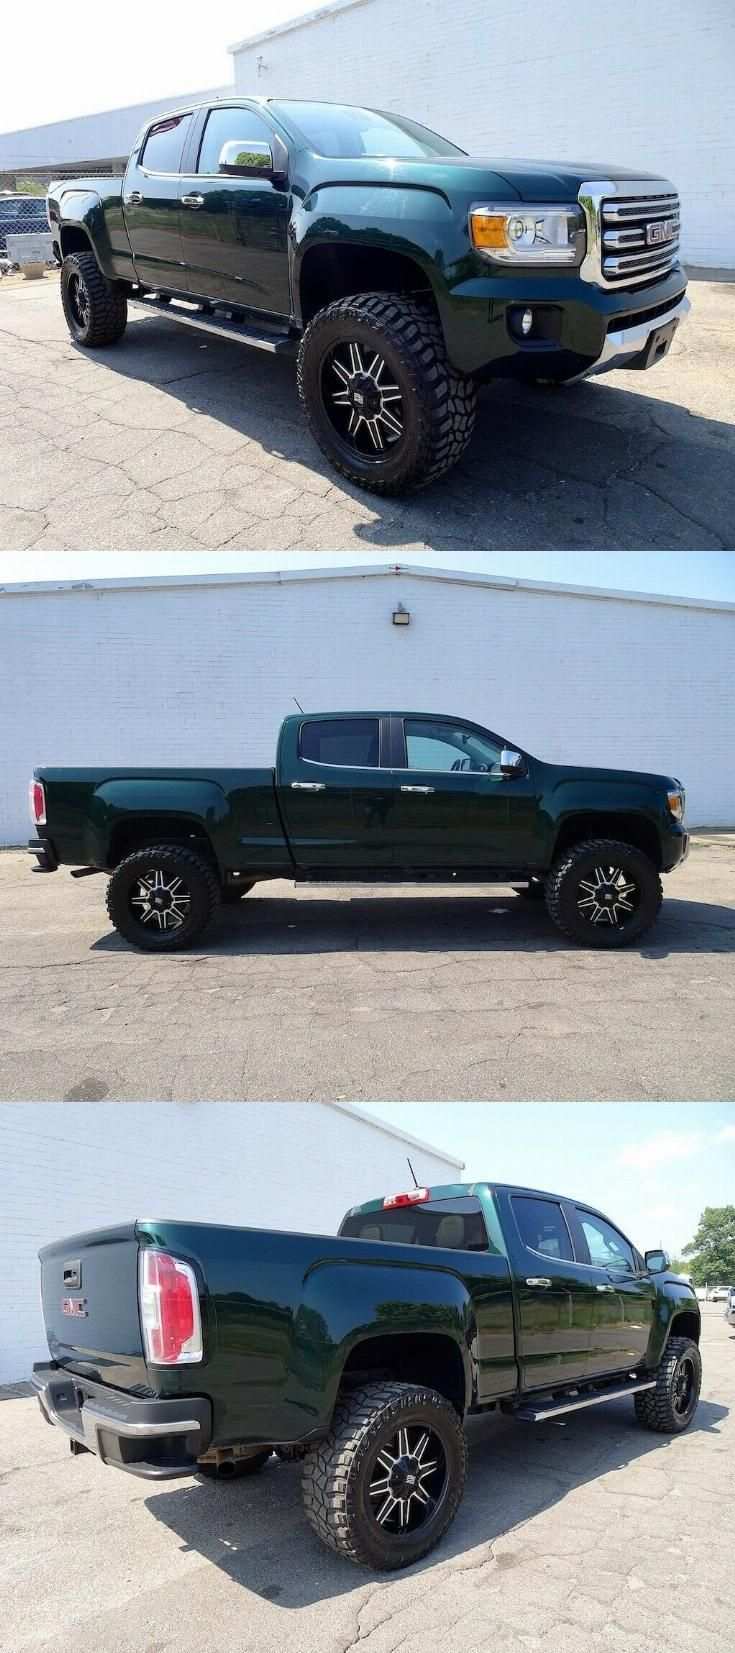 Pin By Matthew Irizarry On Truck In 2020 Gmc Canyon Lifted Trucks For Sale Custom Trucks For Sale